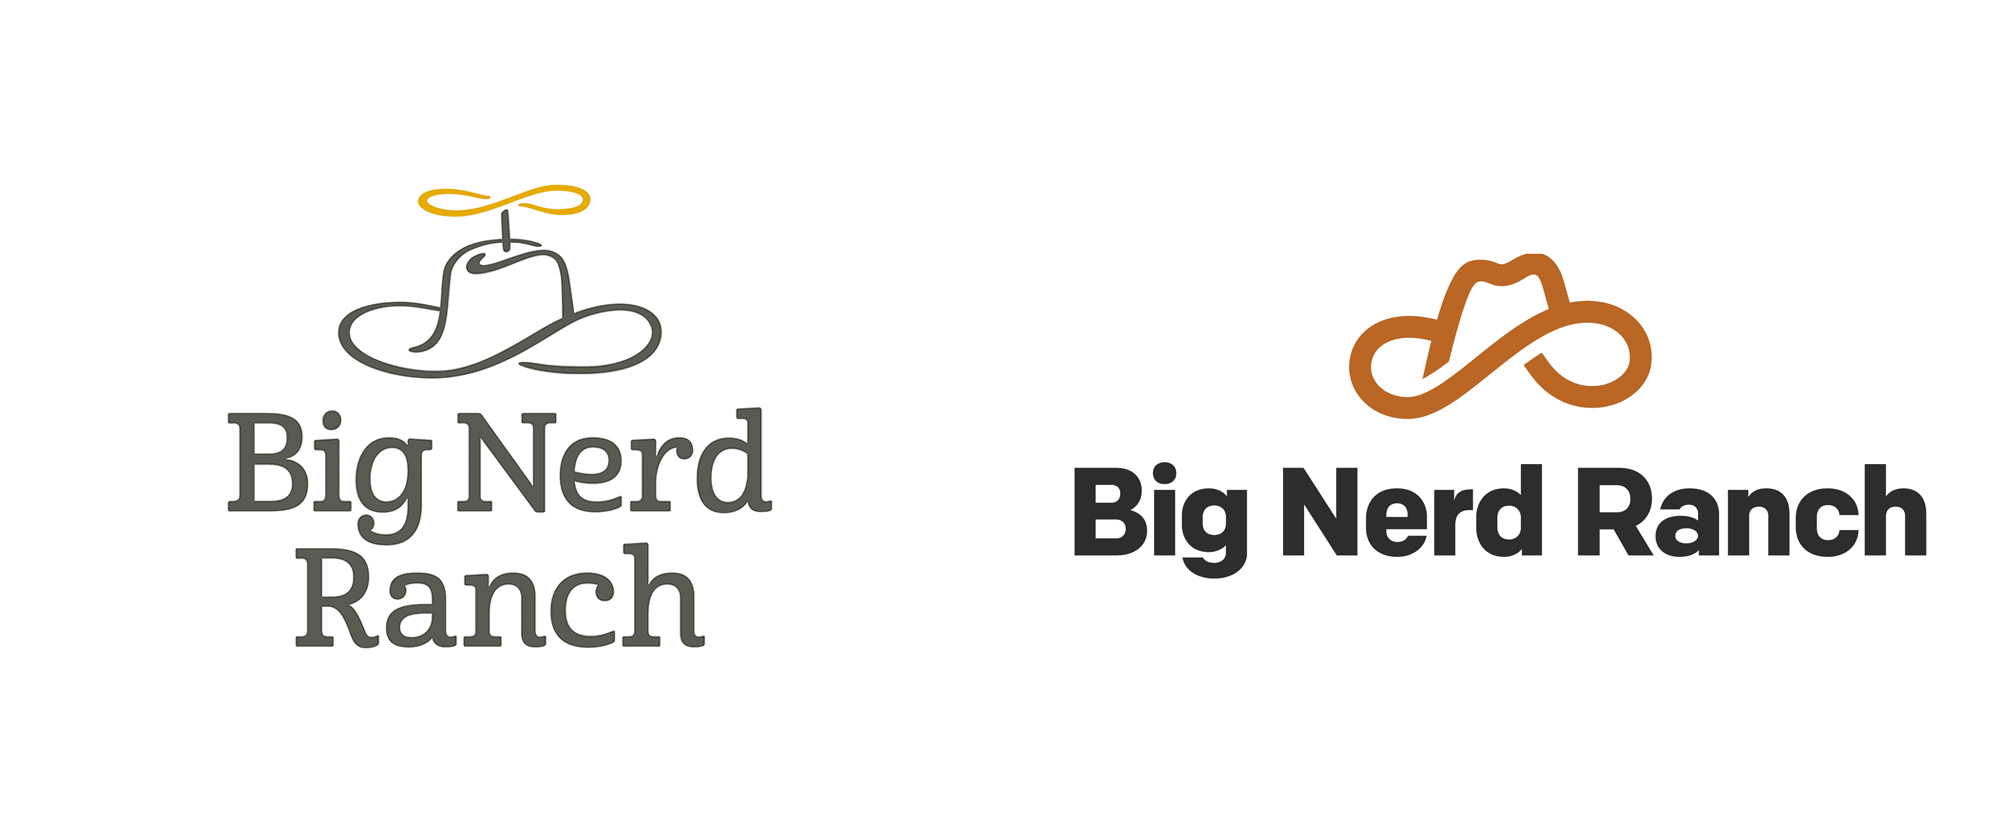 New Logo and Identity for Big Nerd Ranch by Matchstic